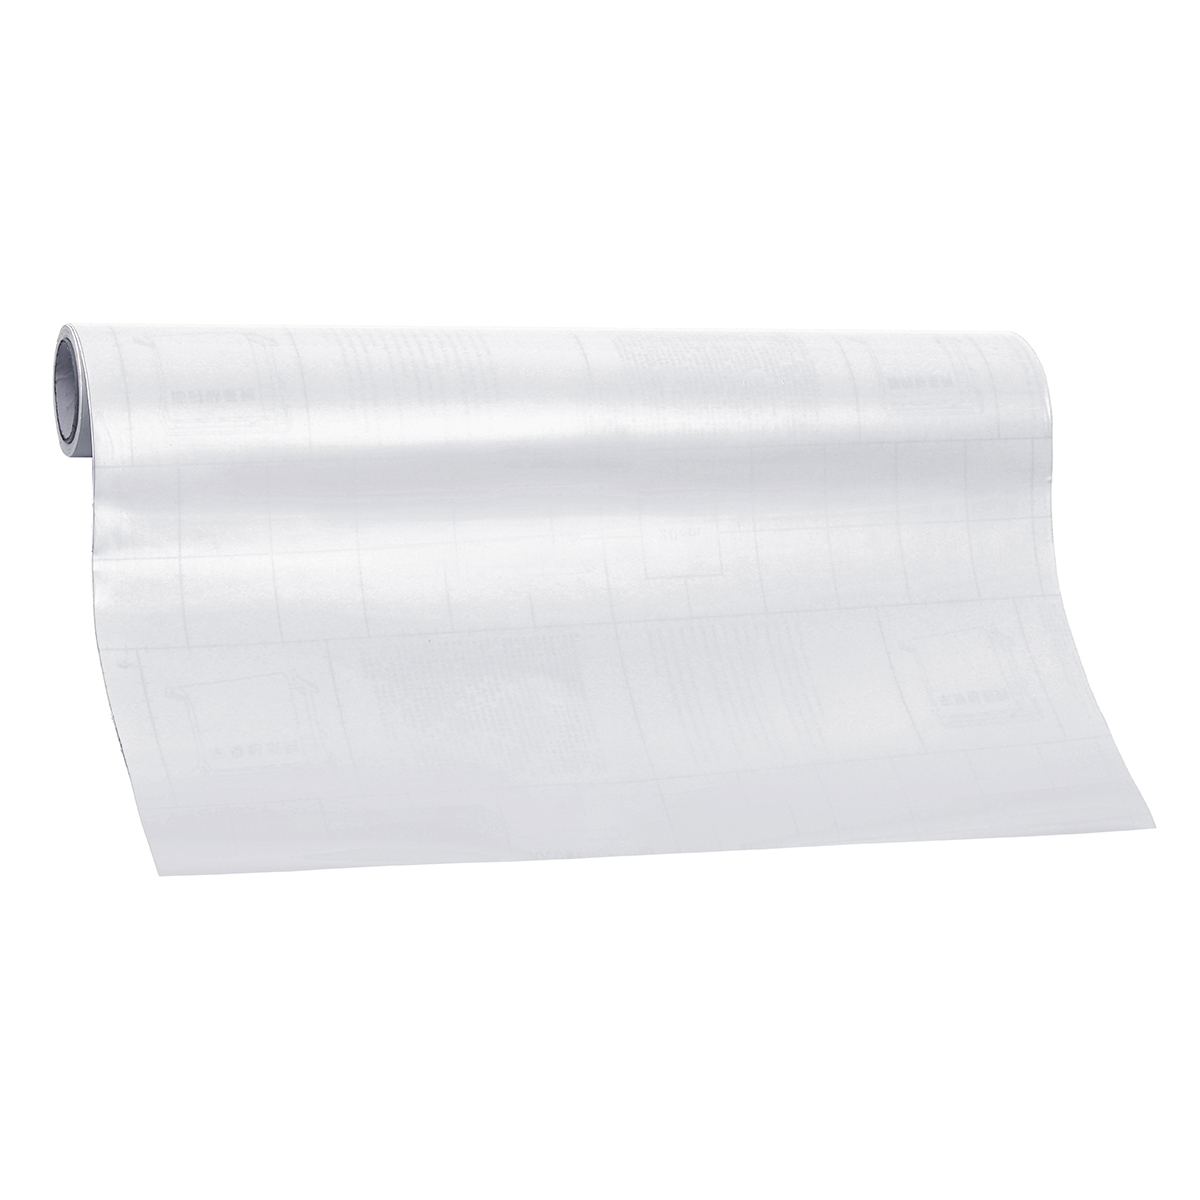 8color Self Adhesive Roll Waterproof Cutting Plotter